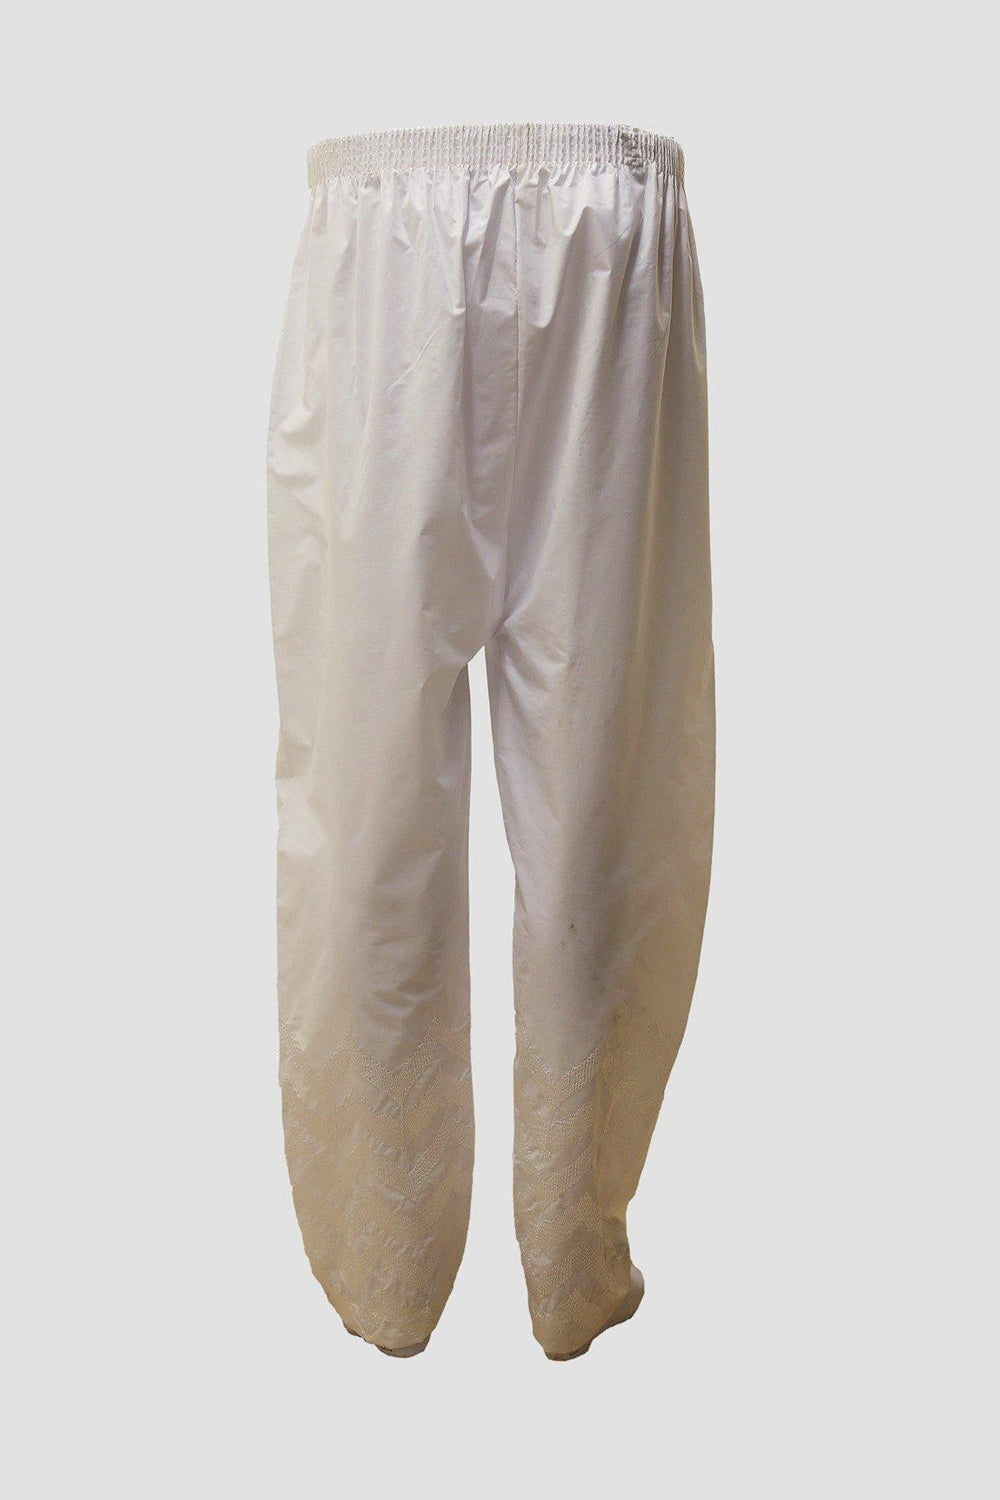 Cotton Stacker Embroidered Trousers - White - Brandsea UK